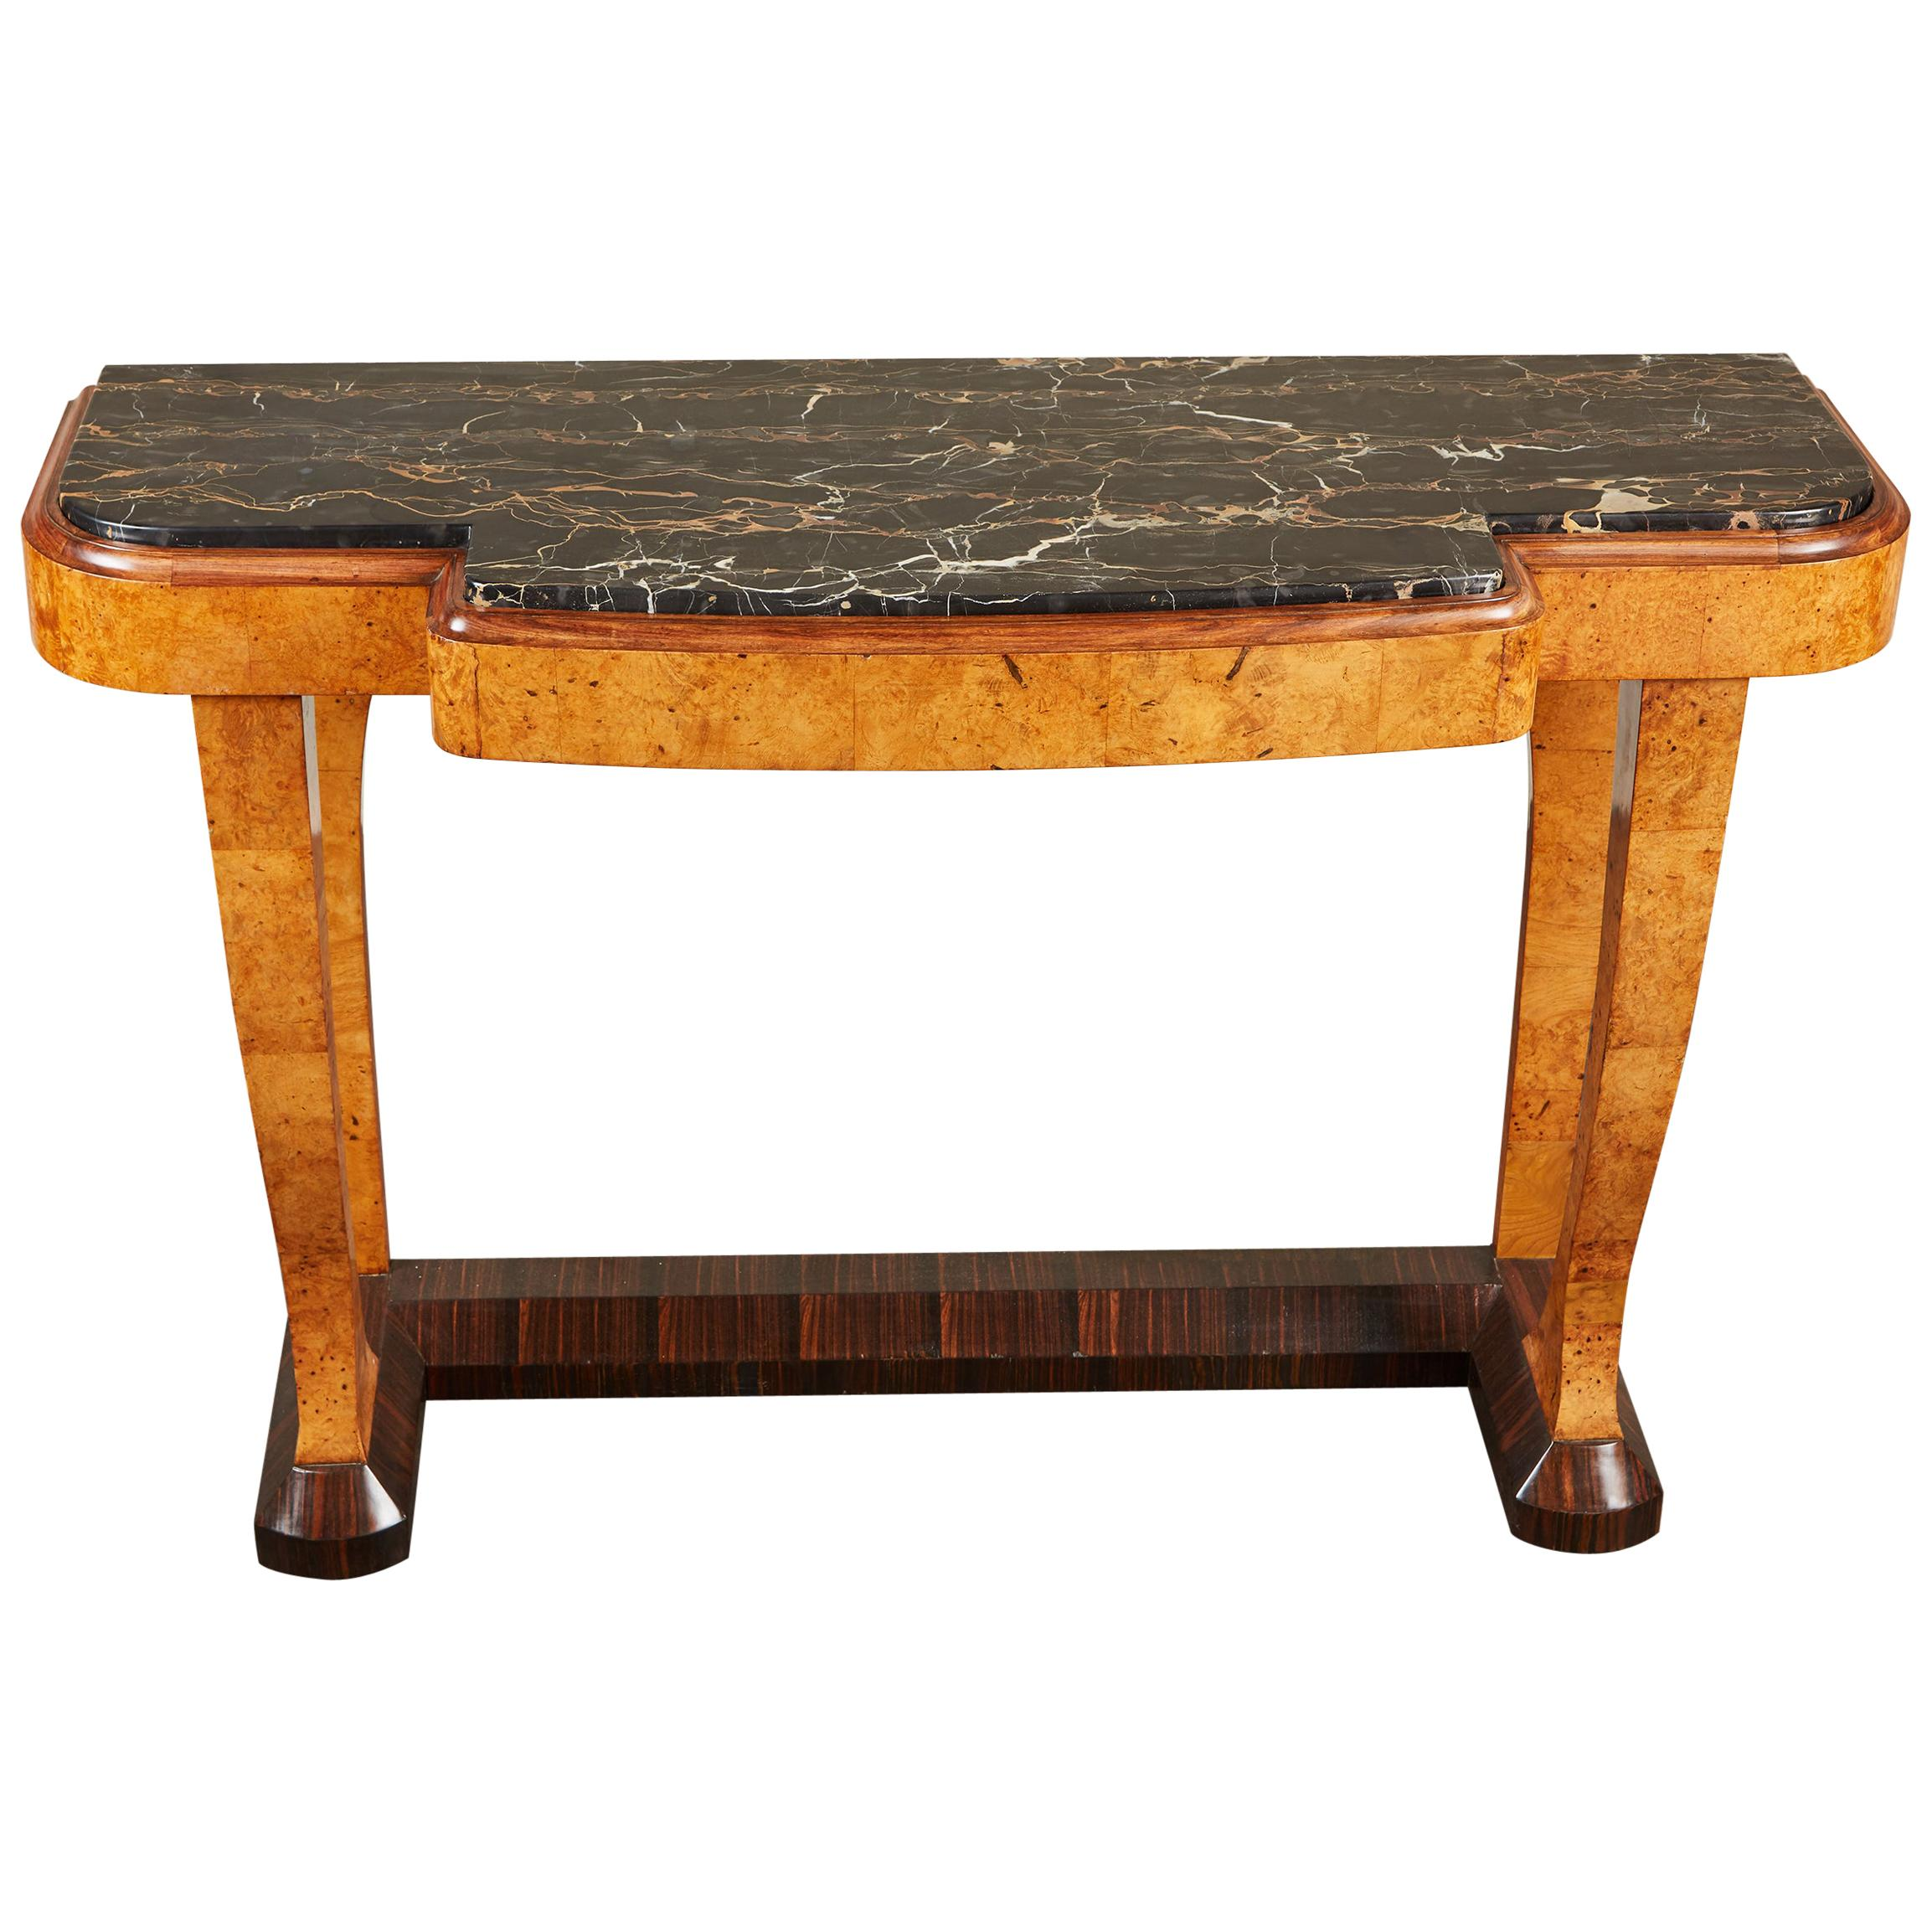 20th Century French Art Deco Console with Marble Top